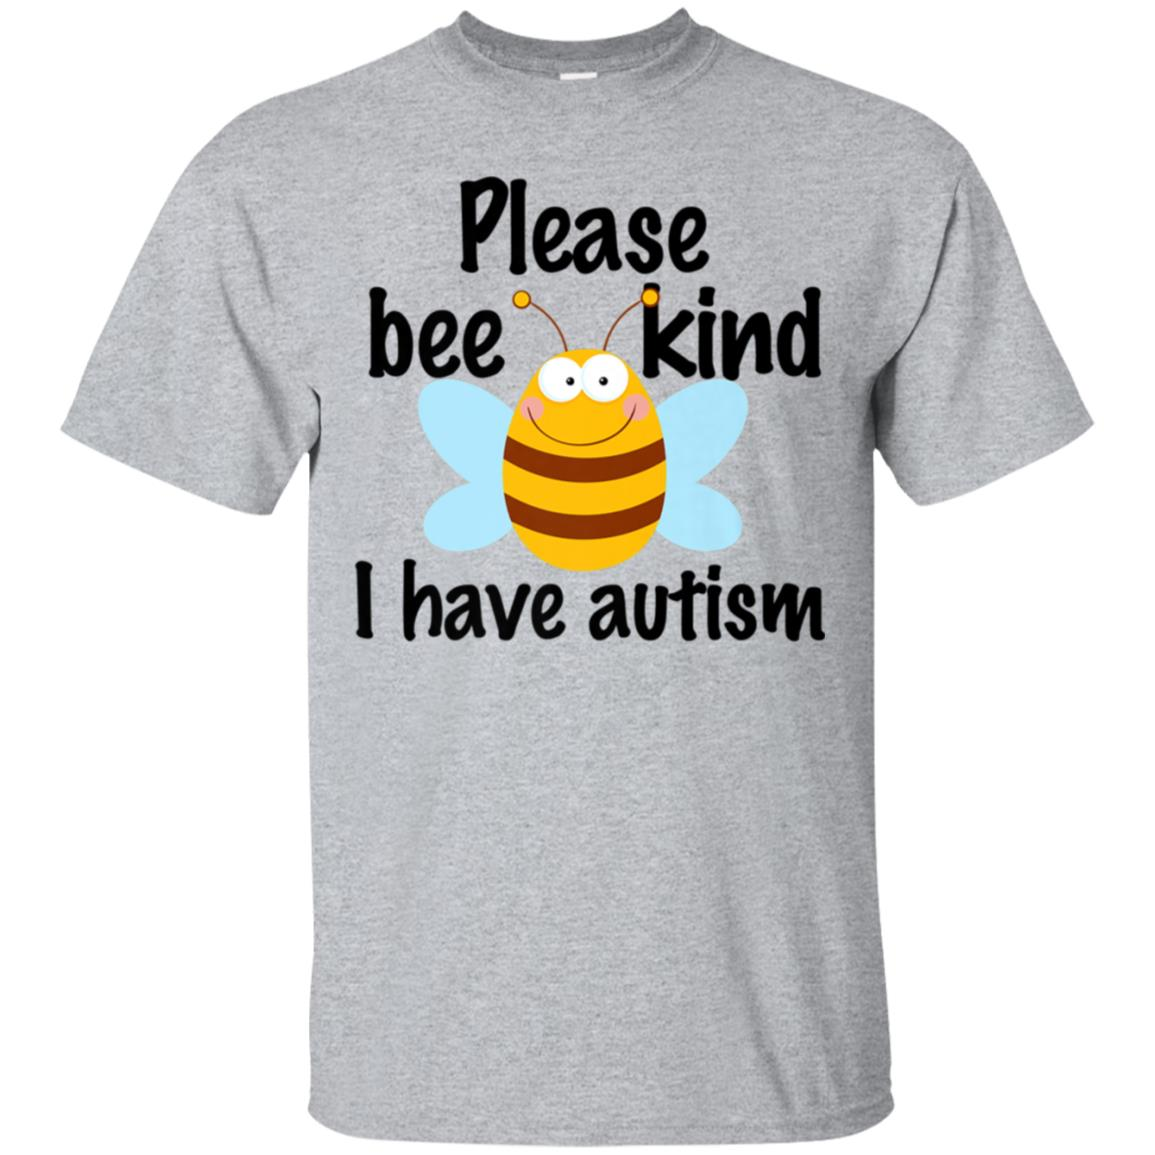 Cute Autism T-Shirt - Please Bee Kind I Have Autism 99promocode